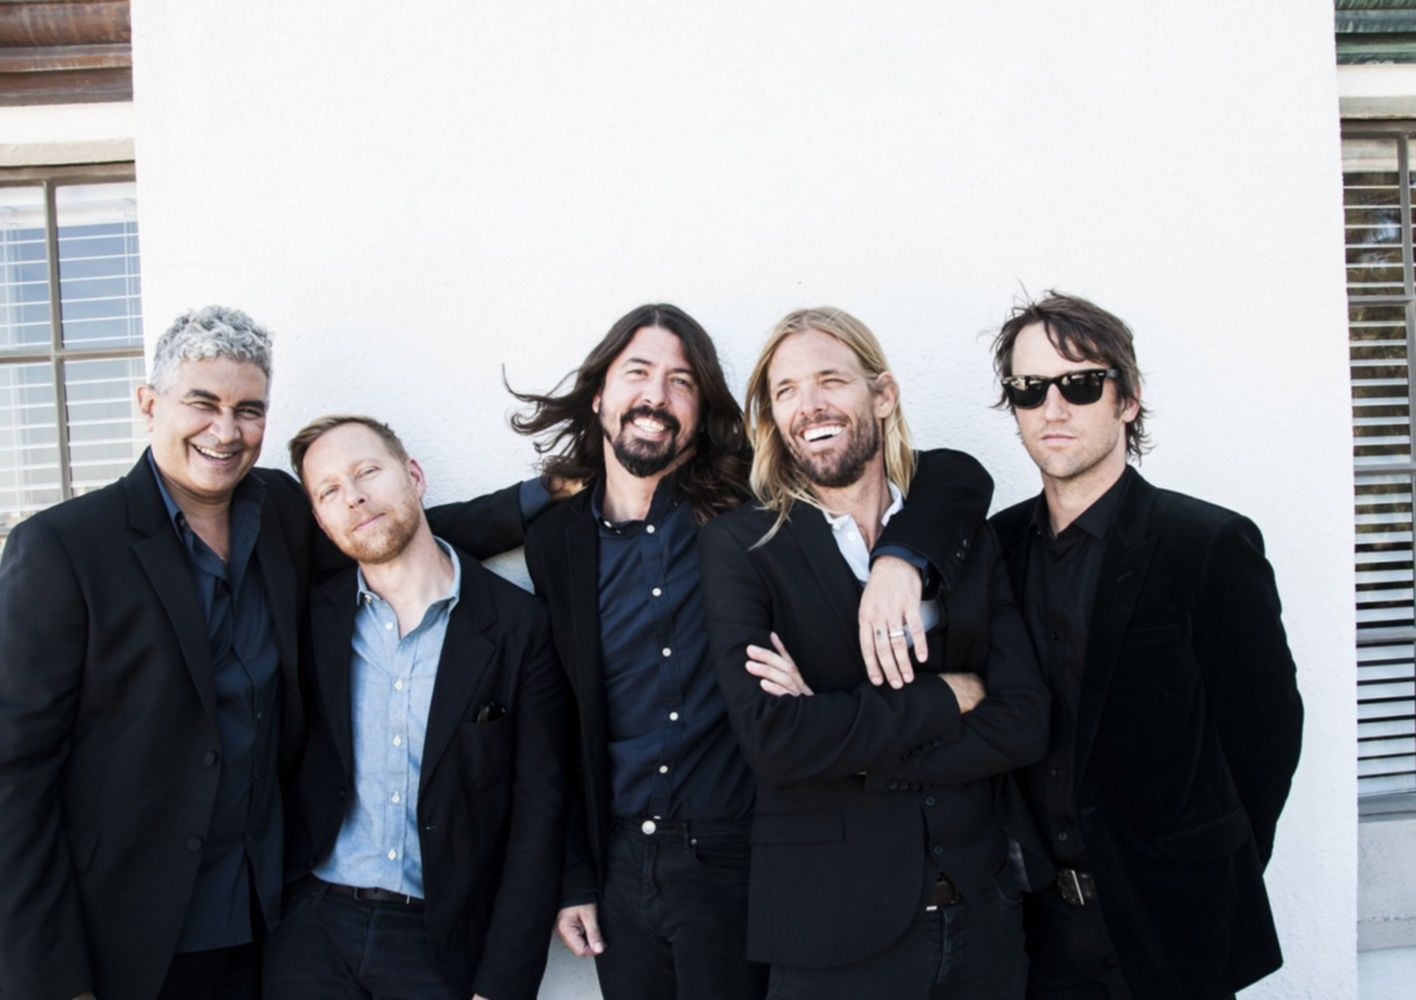 Foo fighters promo 2014 sony